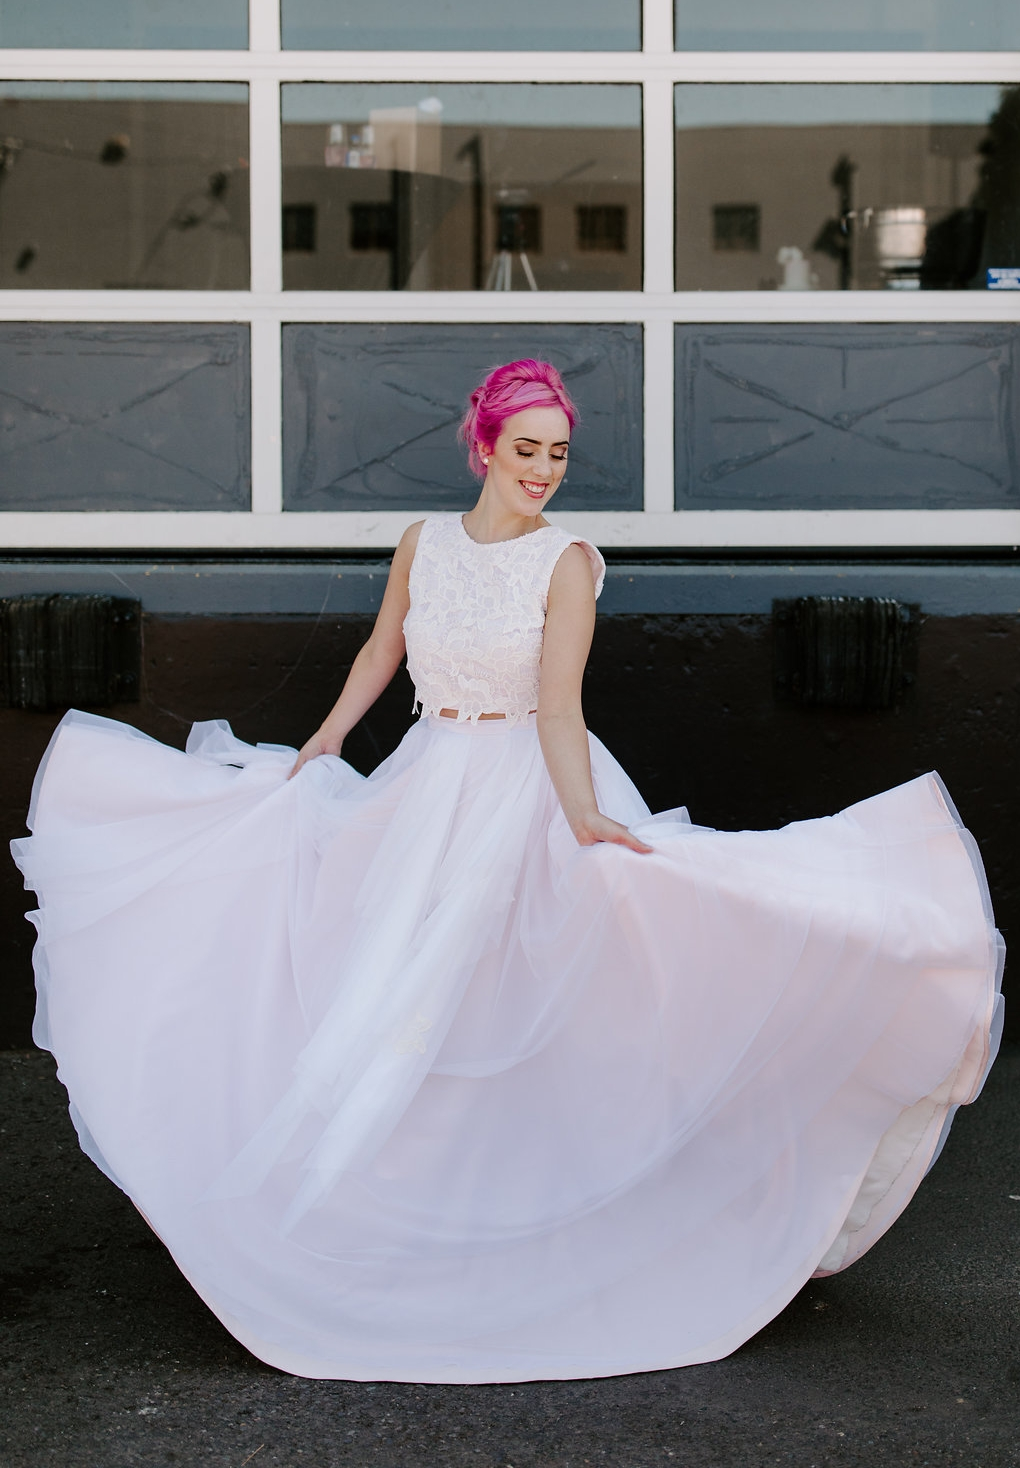 Custom 2 piece wedding dress. Multi-layer/tiered circle skirt with crop lace top - blush satin and tulle